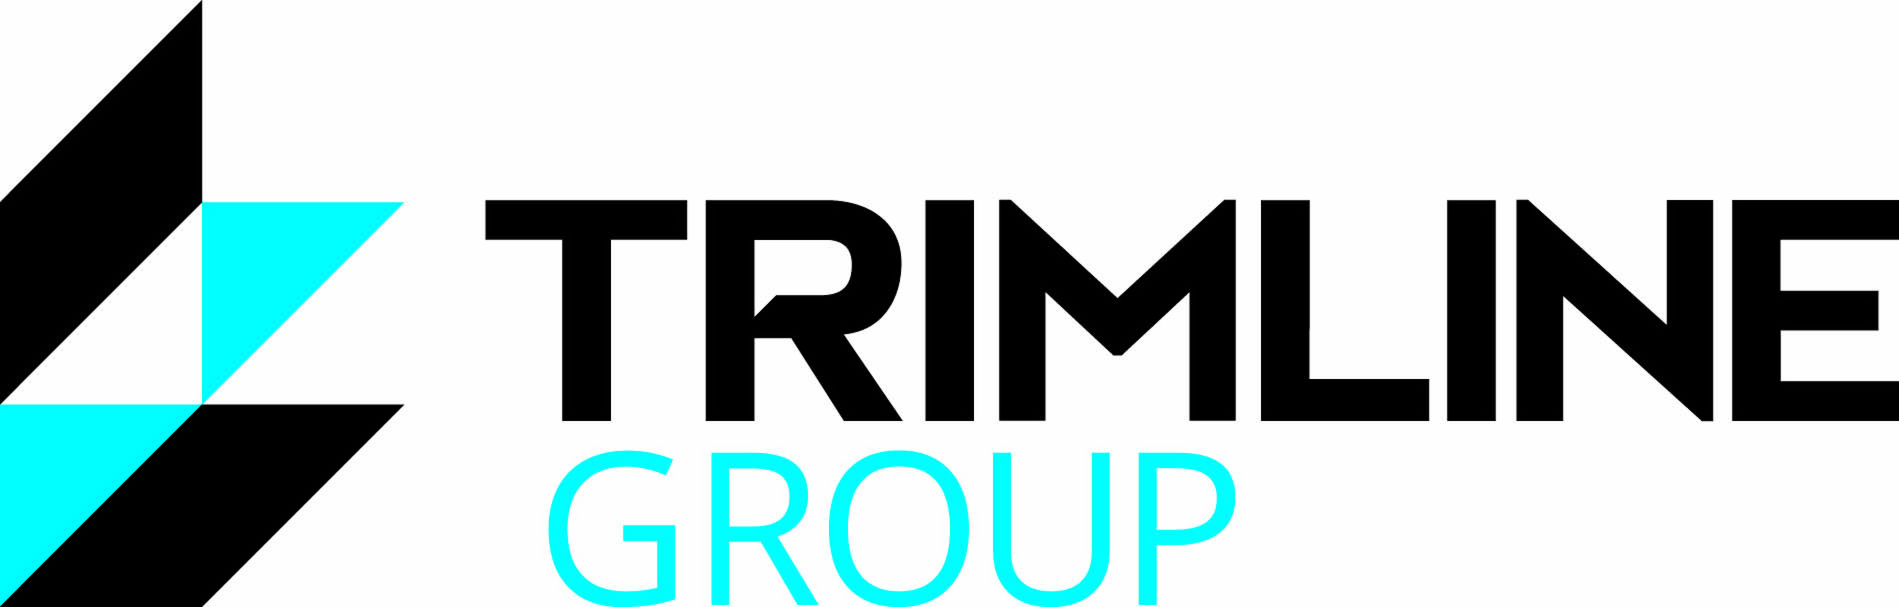 Trimline Group